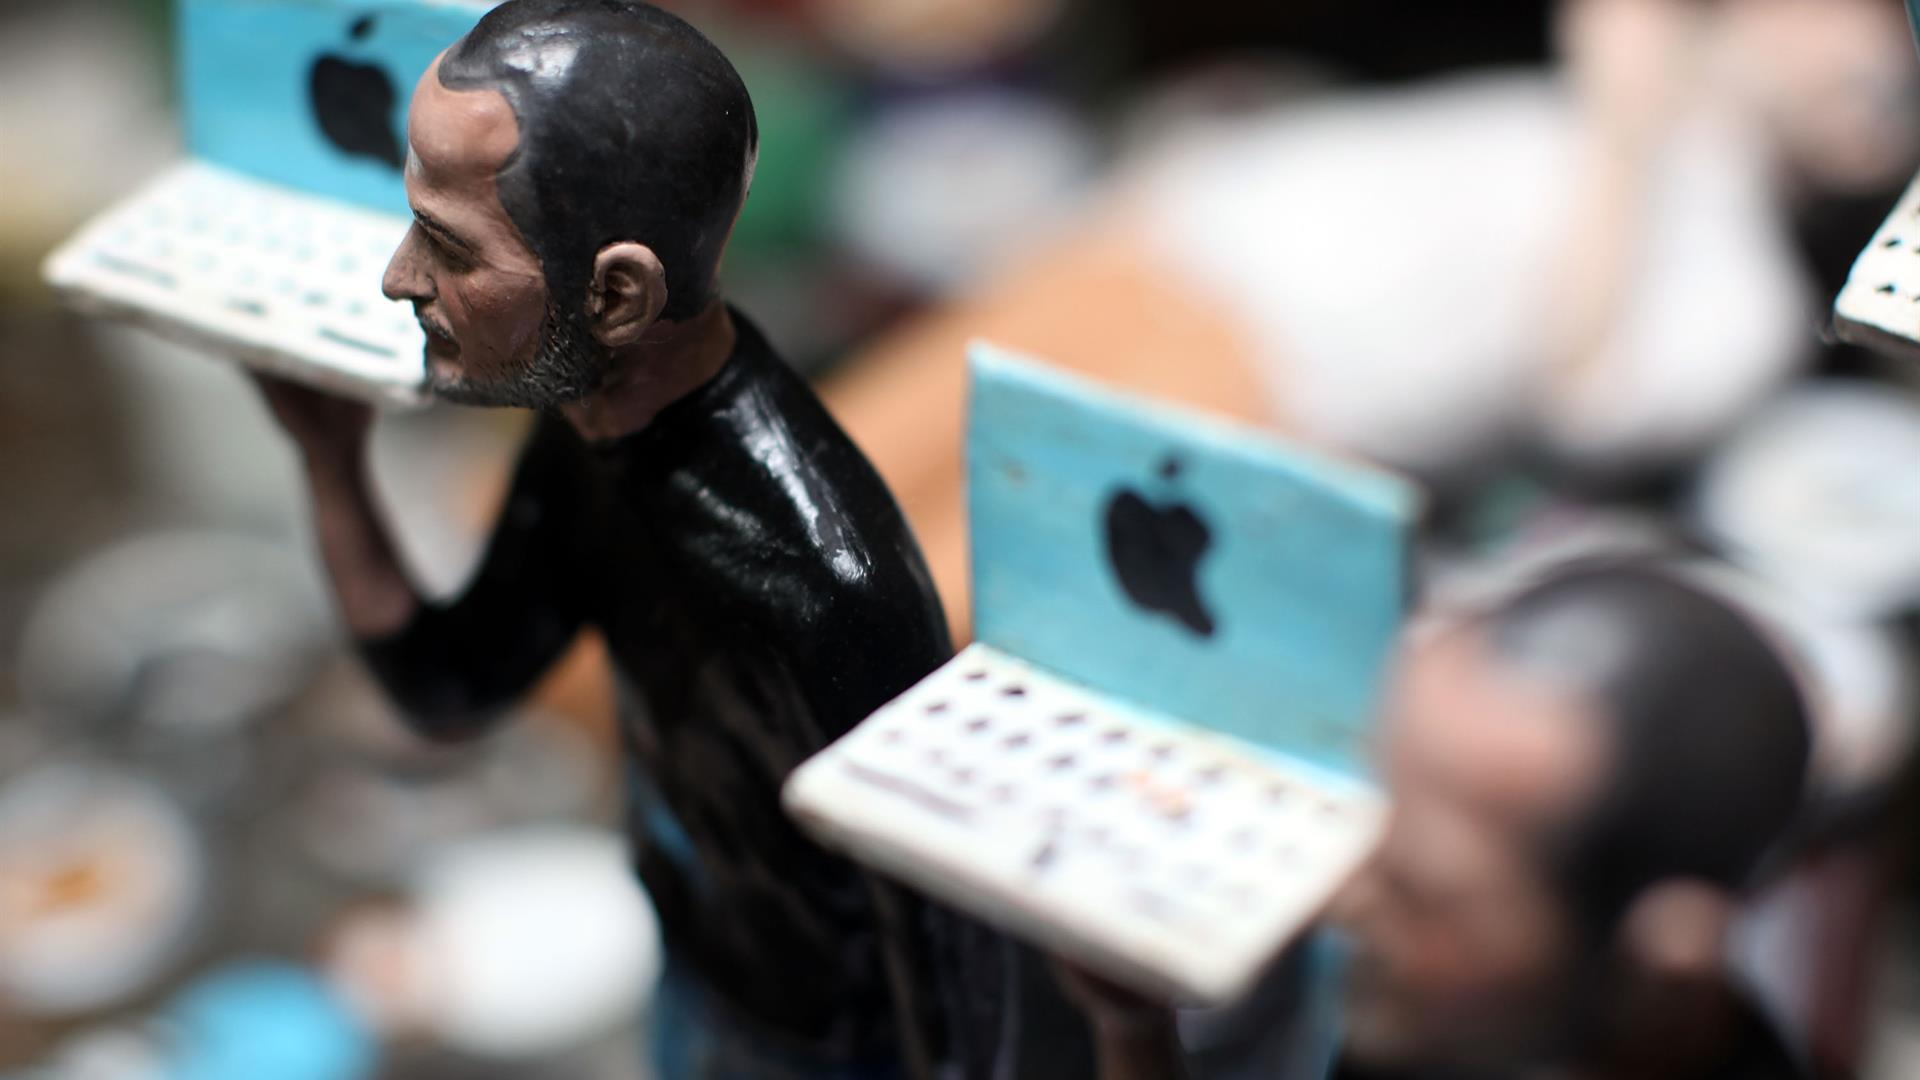 Presepe Steve Jobs Napoli Apple